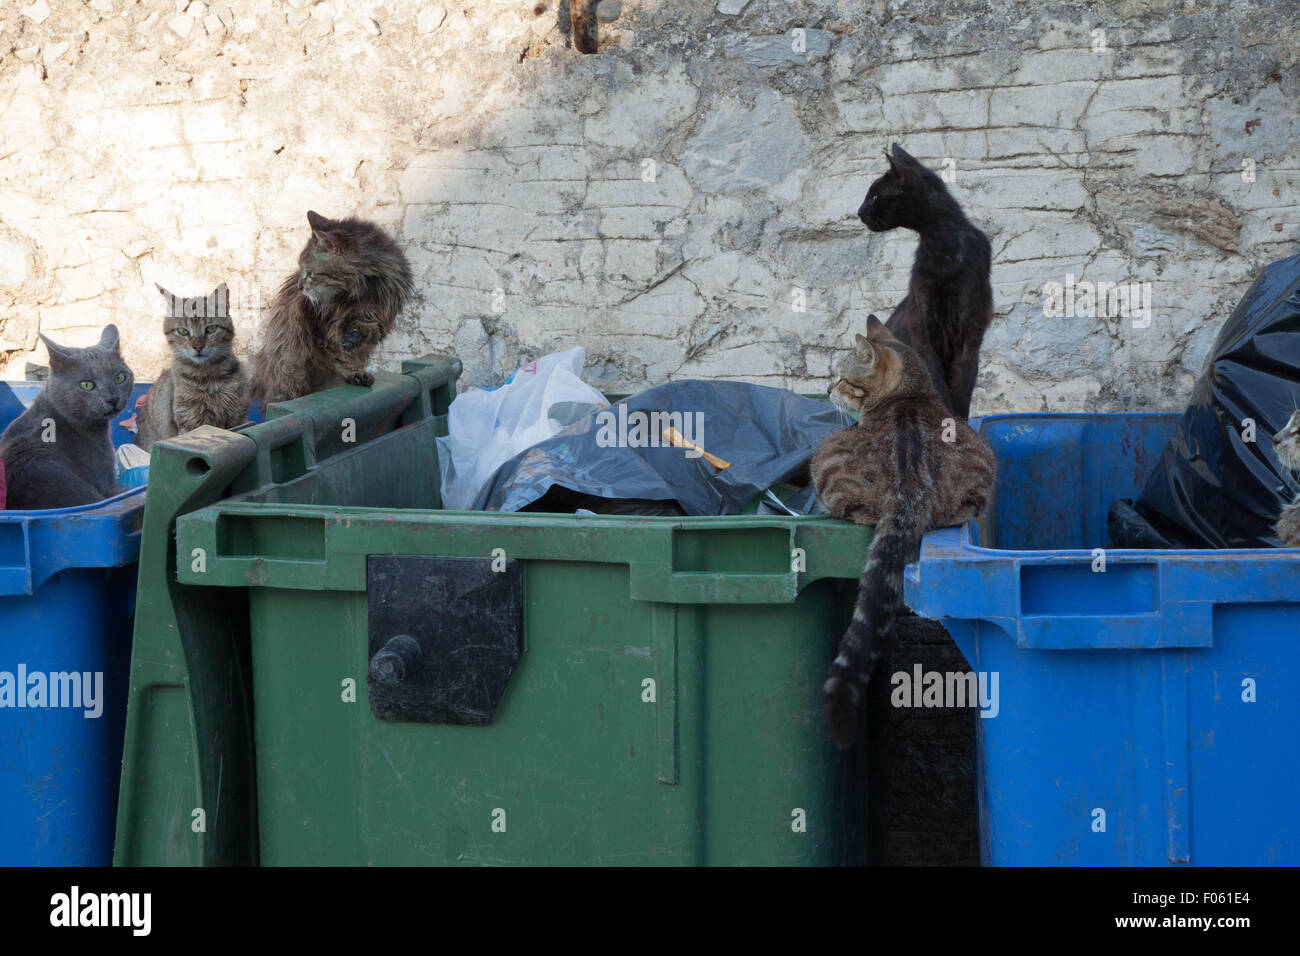 Ferrol cats scavenging in rubbish bins - Stock Image